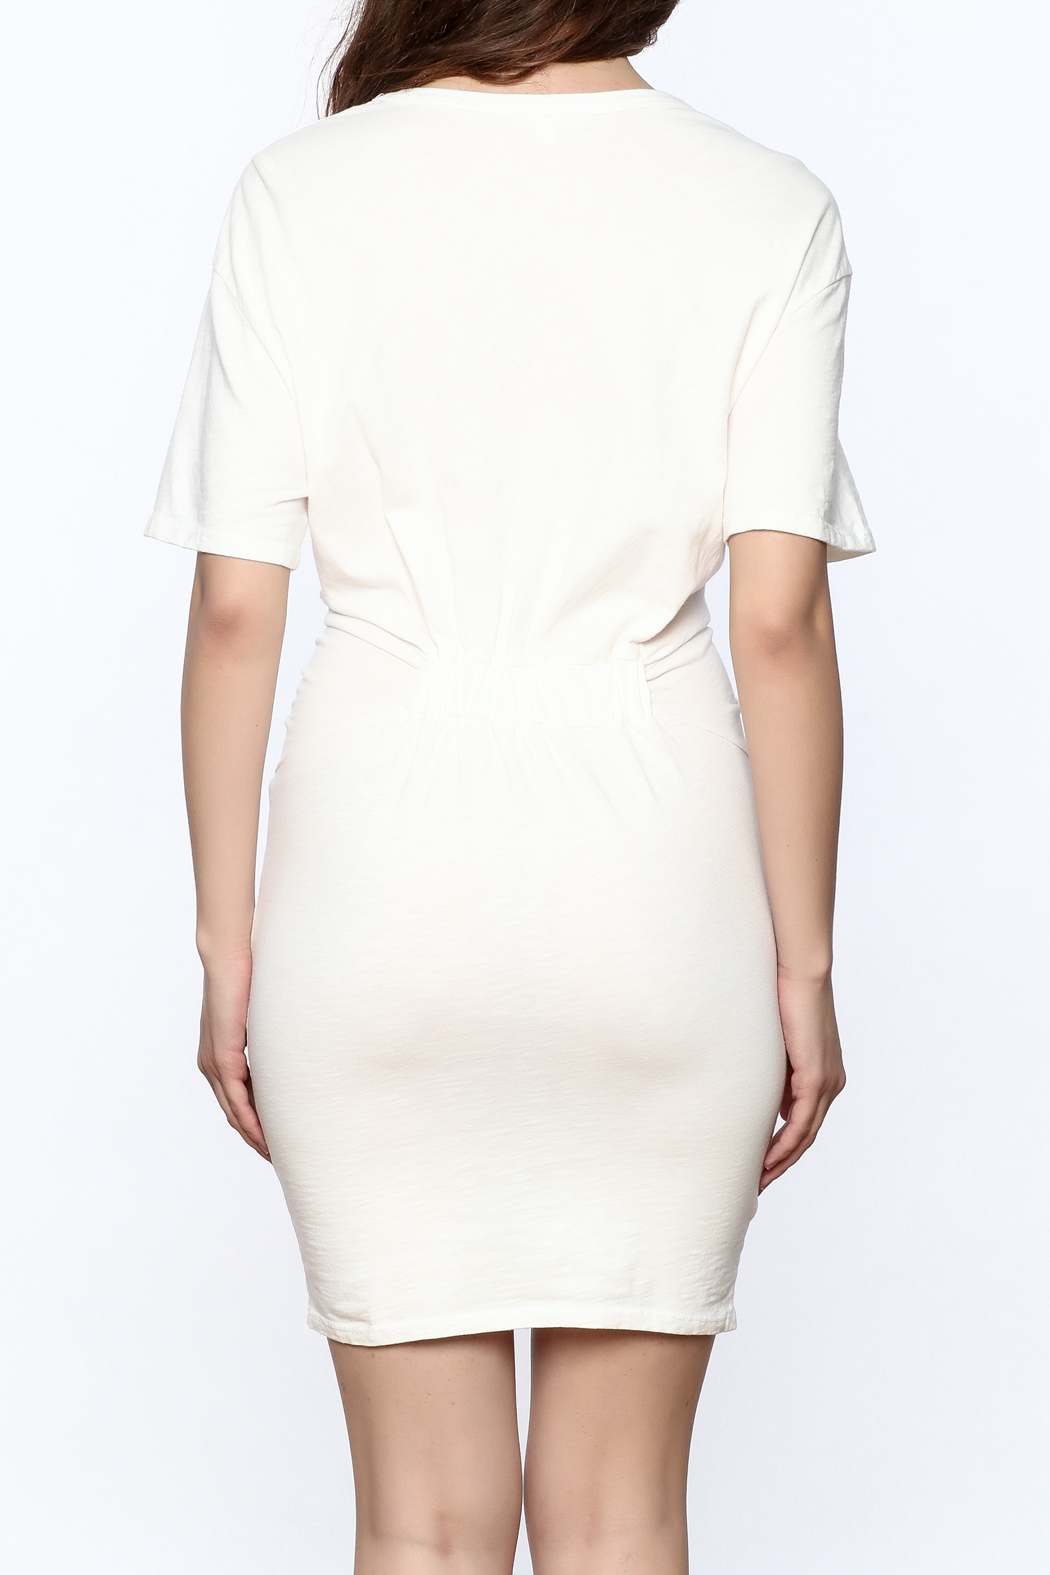 Dance & Marvel White Knotted Dress - Back Cropped Image